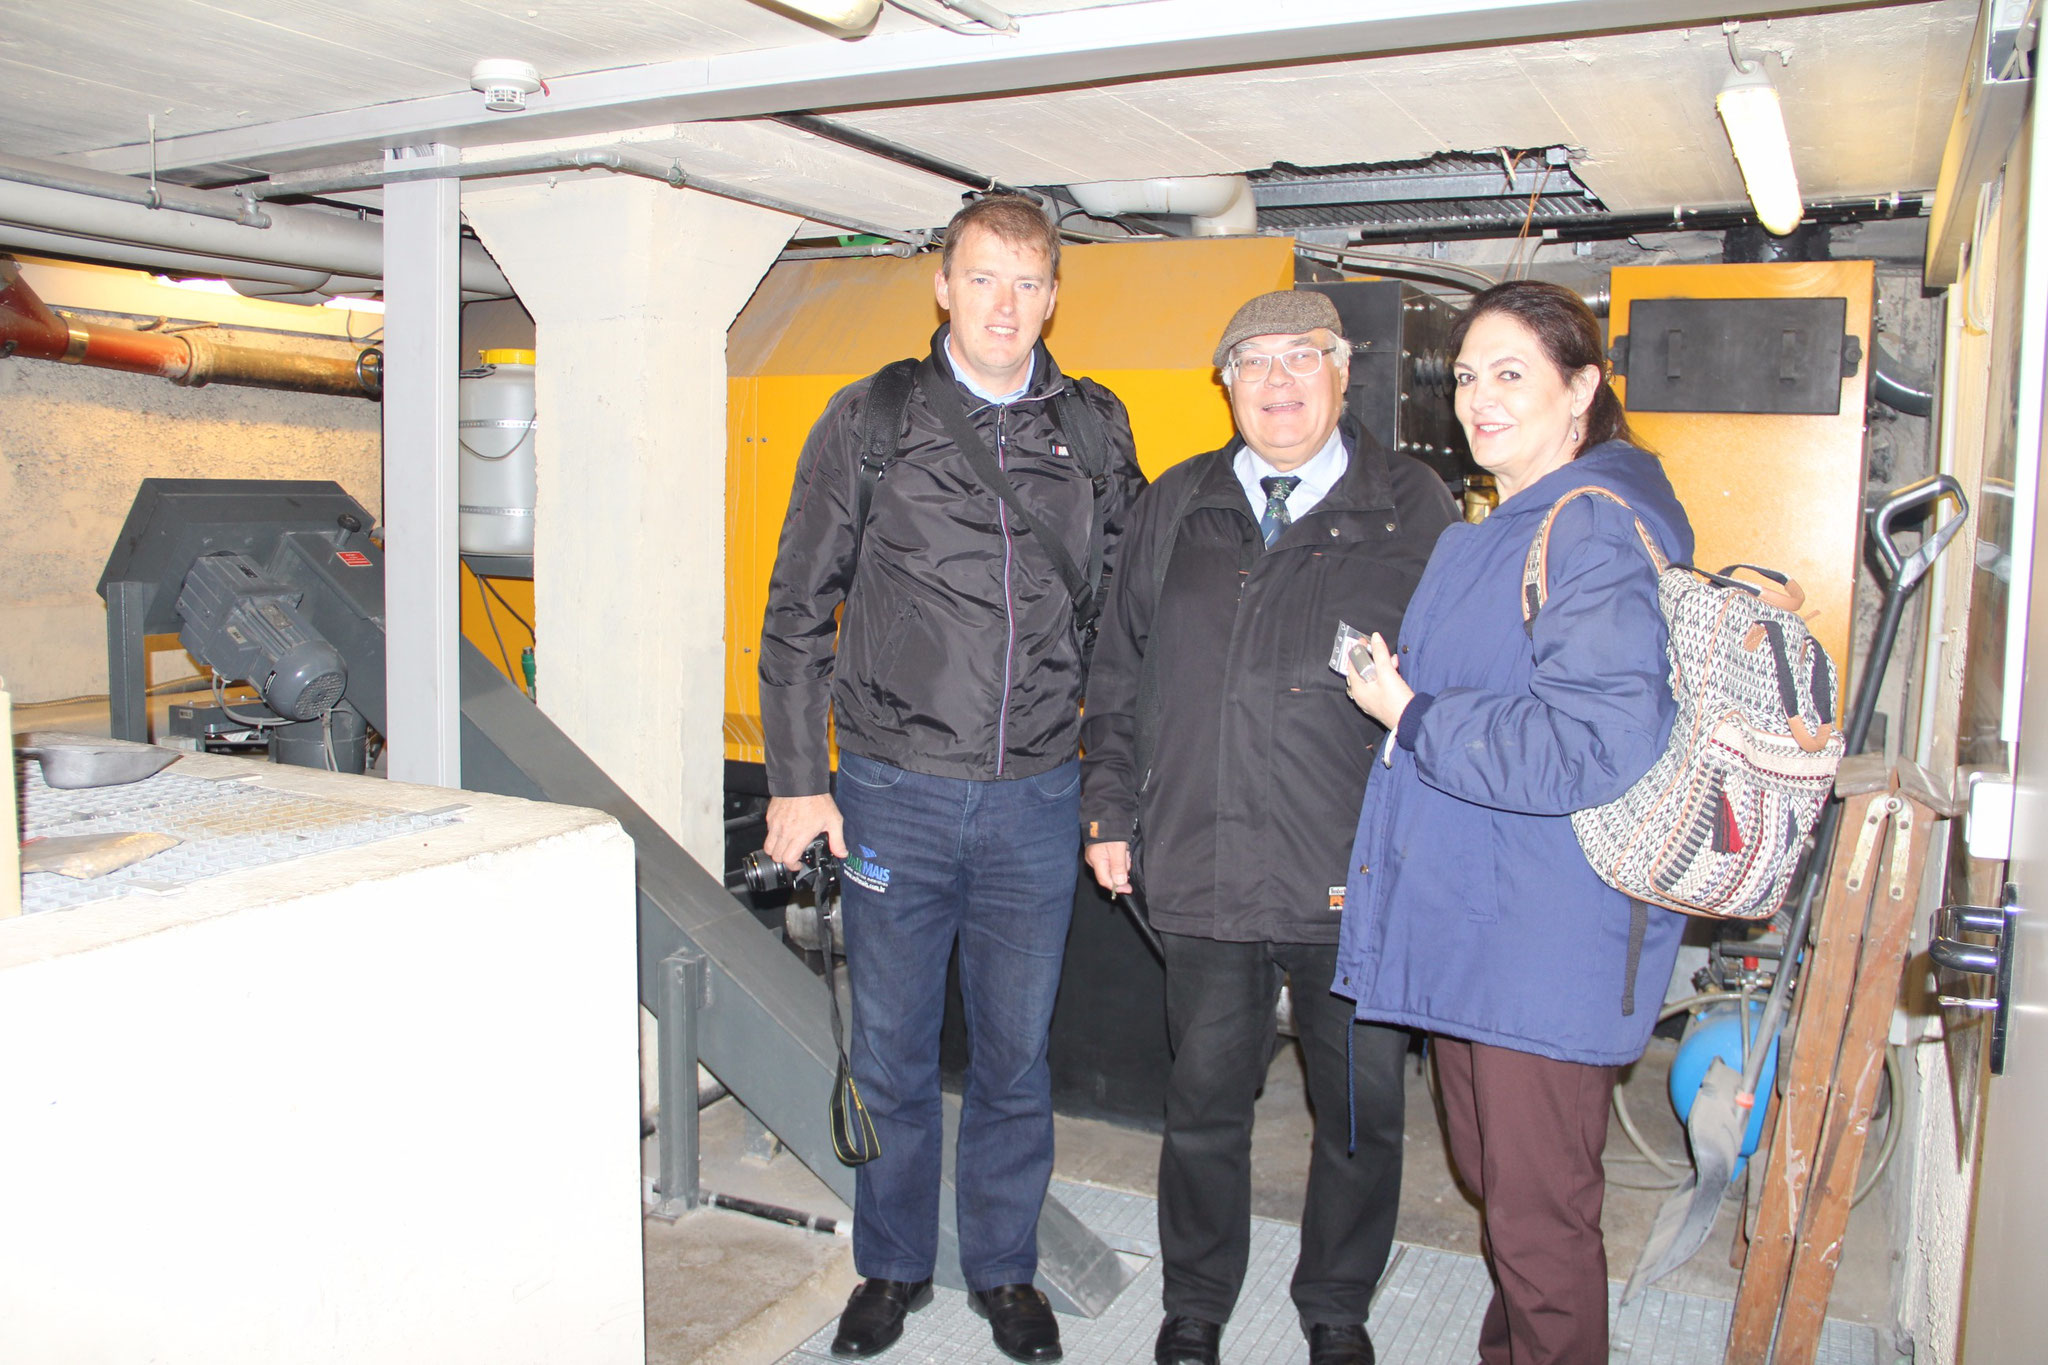 Julio Müller, Erhart Schulz and Cibeli Monteverde visiting the basement of the Hotel Victoria, where they have a biomass plant.